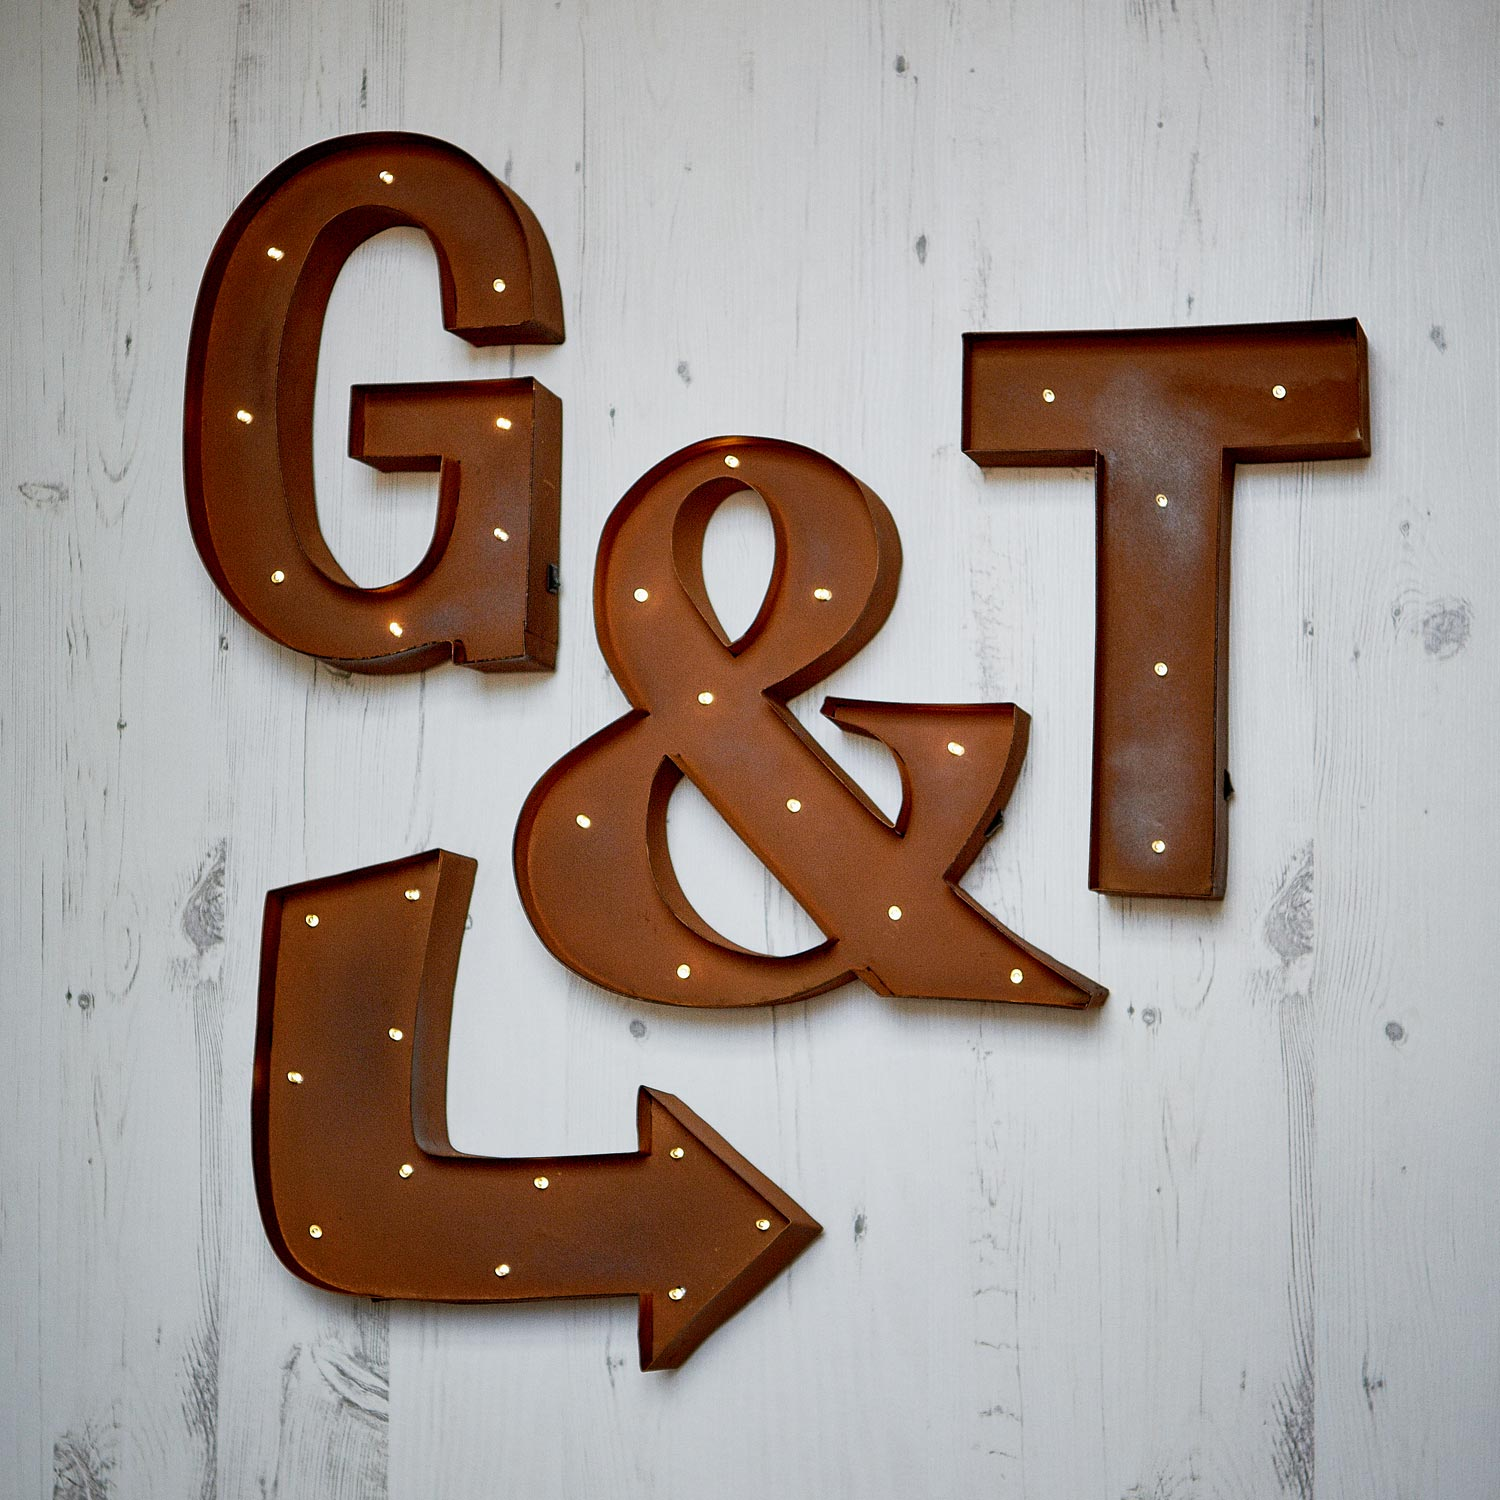 light up wall letters carnival wall light up letters 23444 | 1 Lifestyle Shot 2